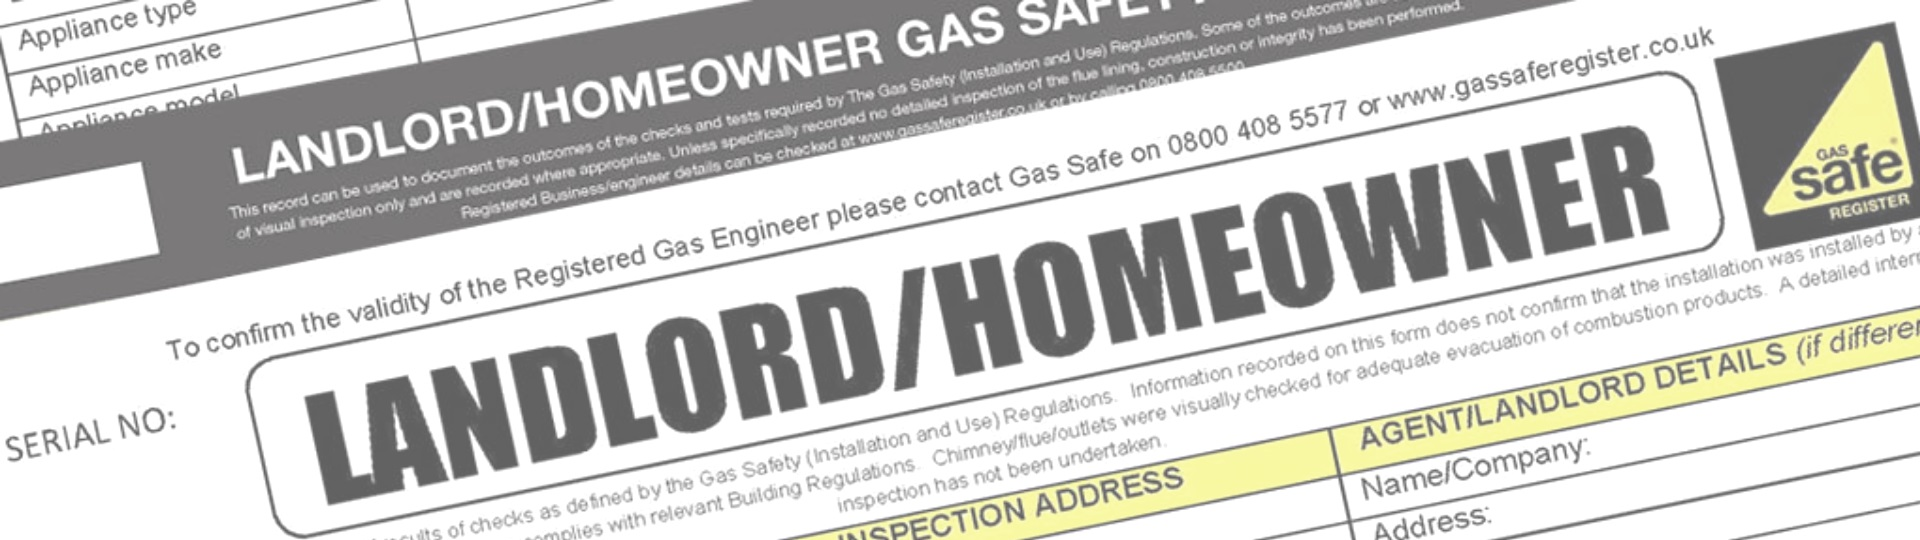 Gas Saftey Certificates Emersons Green